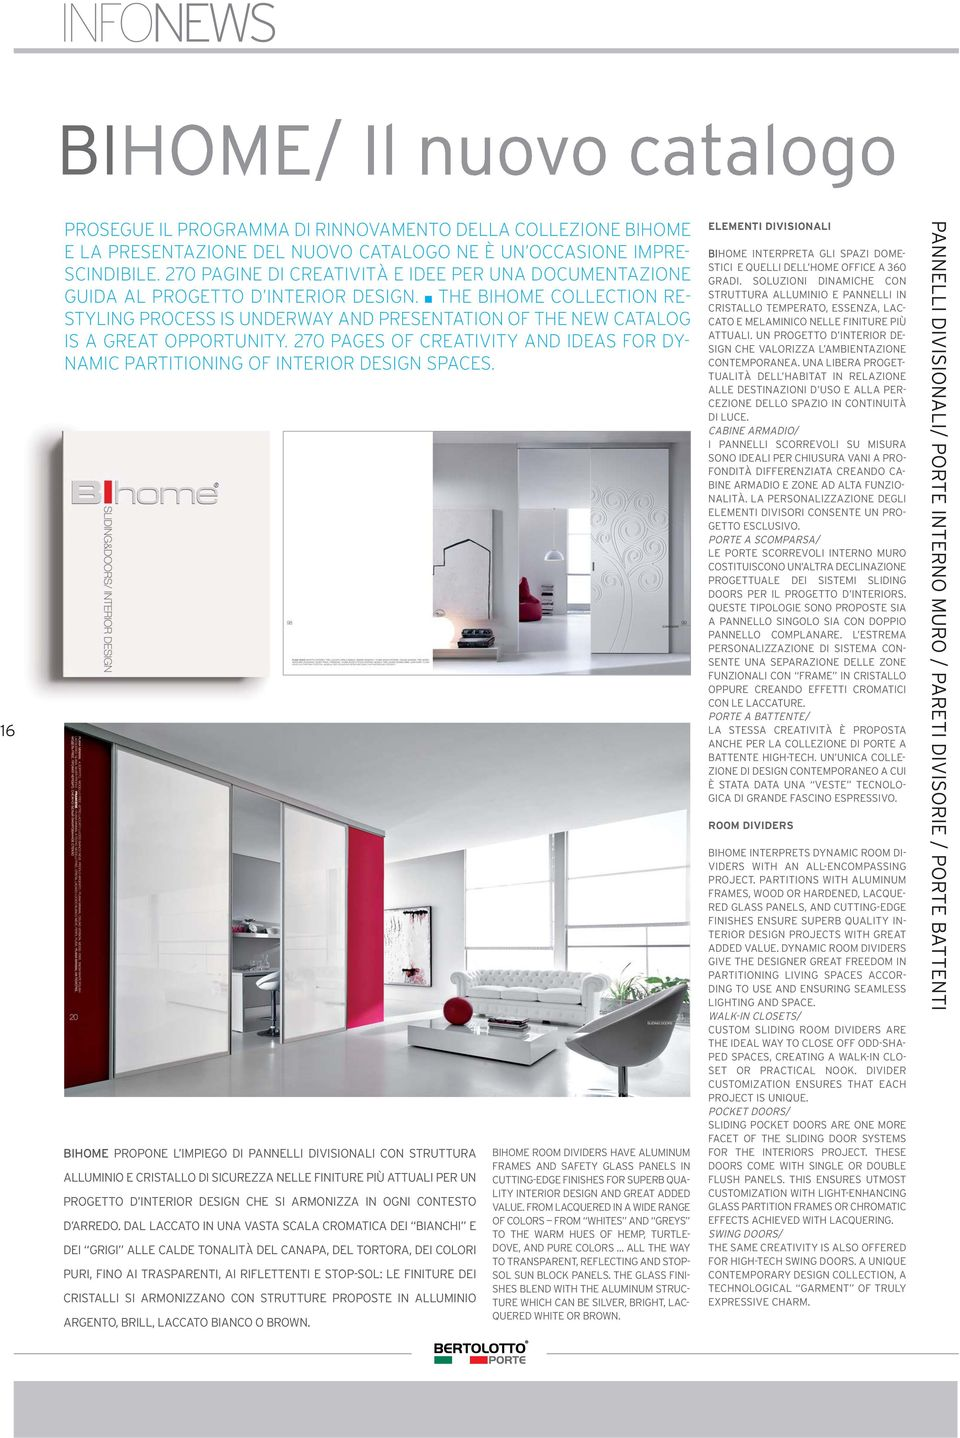 n THE BIHOME COLLECTION RE- STYLING PROCESS IS UNDERWAY AND PRESENTATION OF THE NEW CATALOG IS A GREAT OPPORTUNITY.